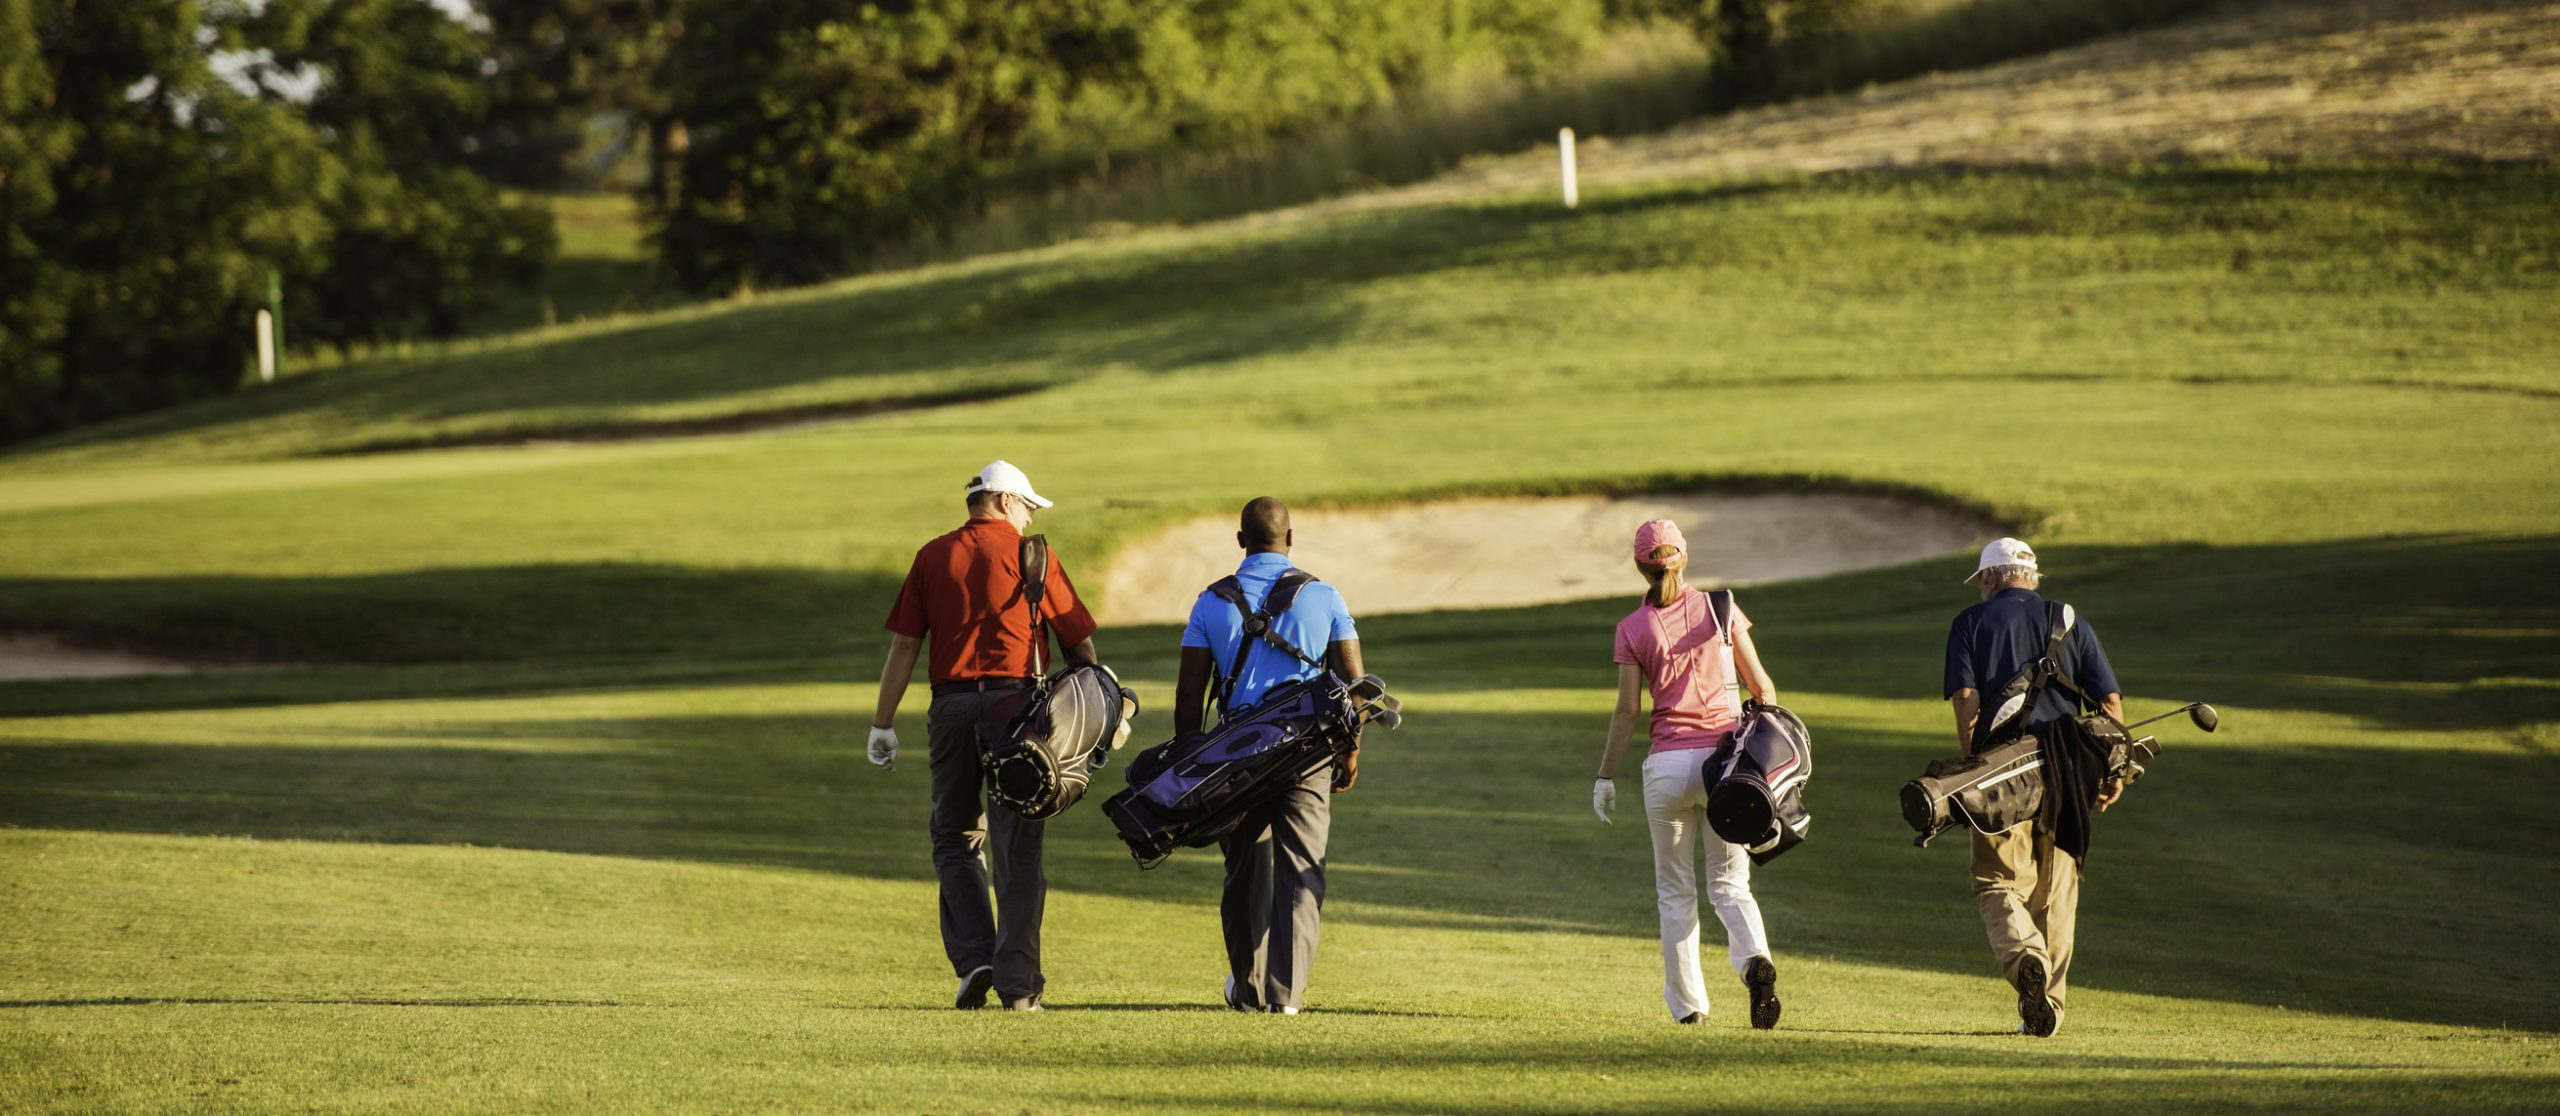 Golfers walking on fairway